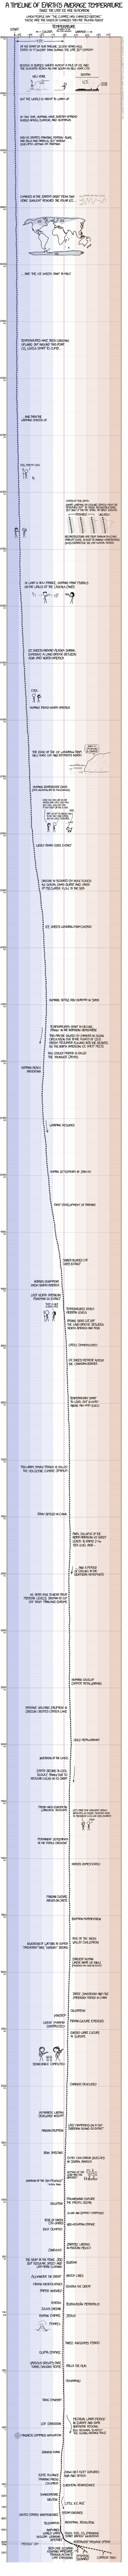 earth_temperature_timeline